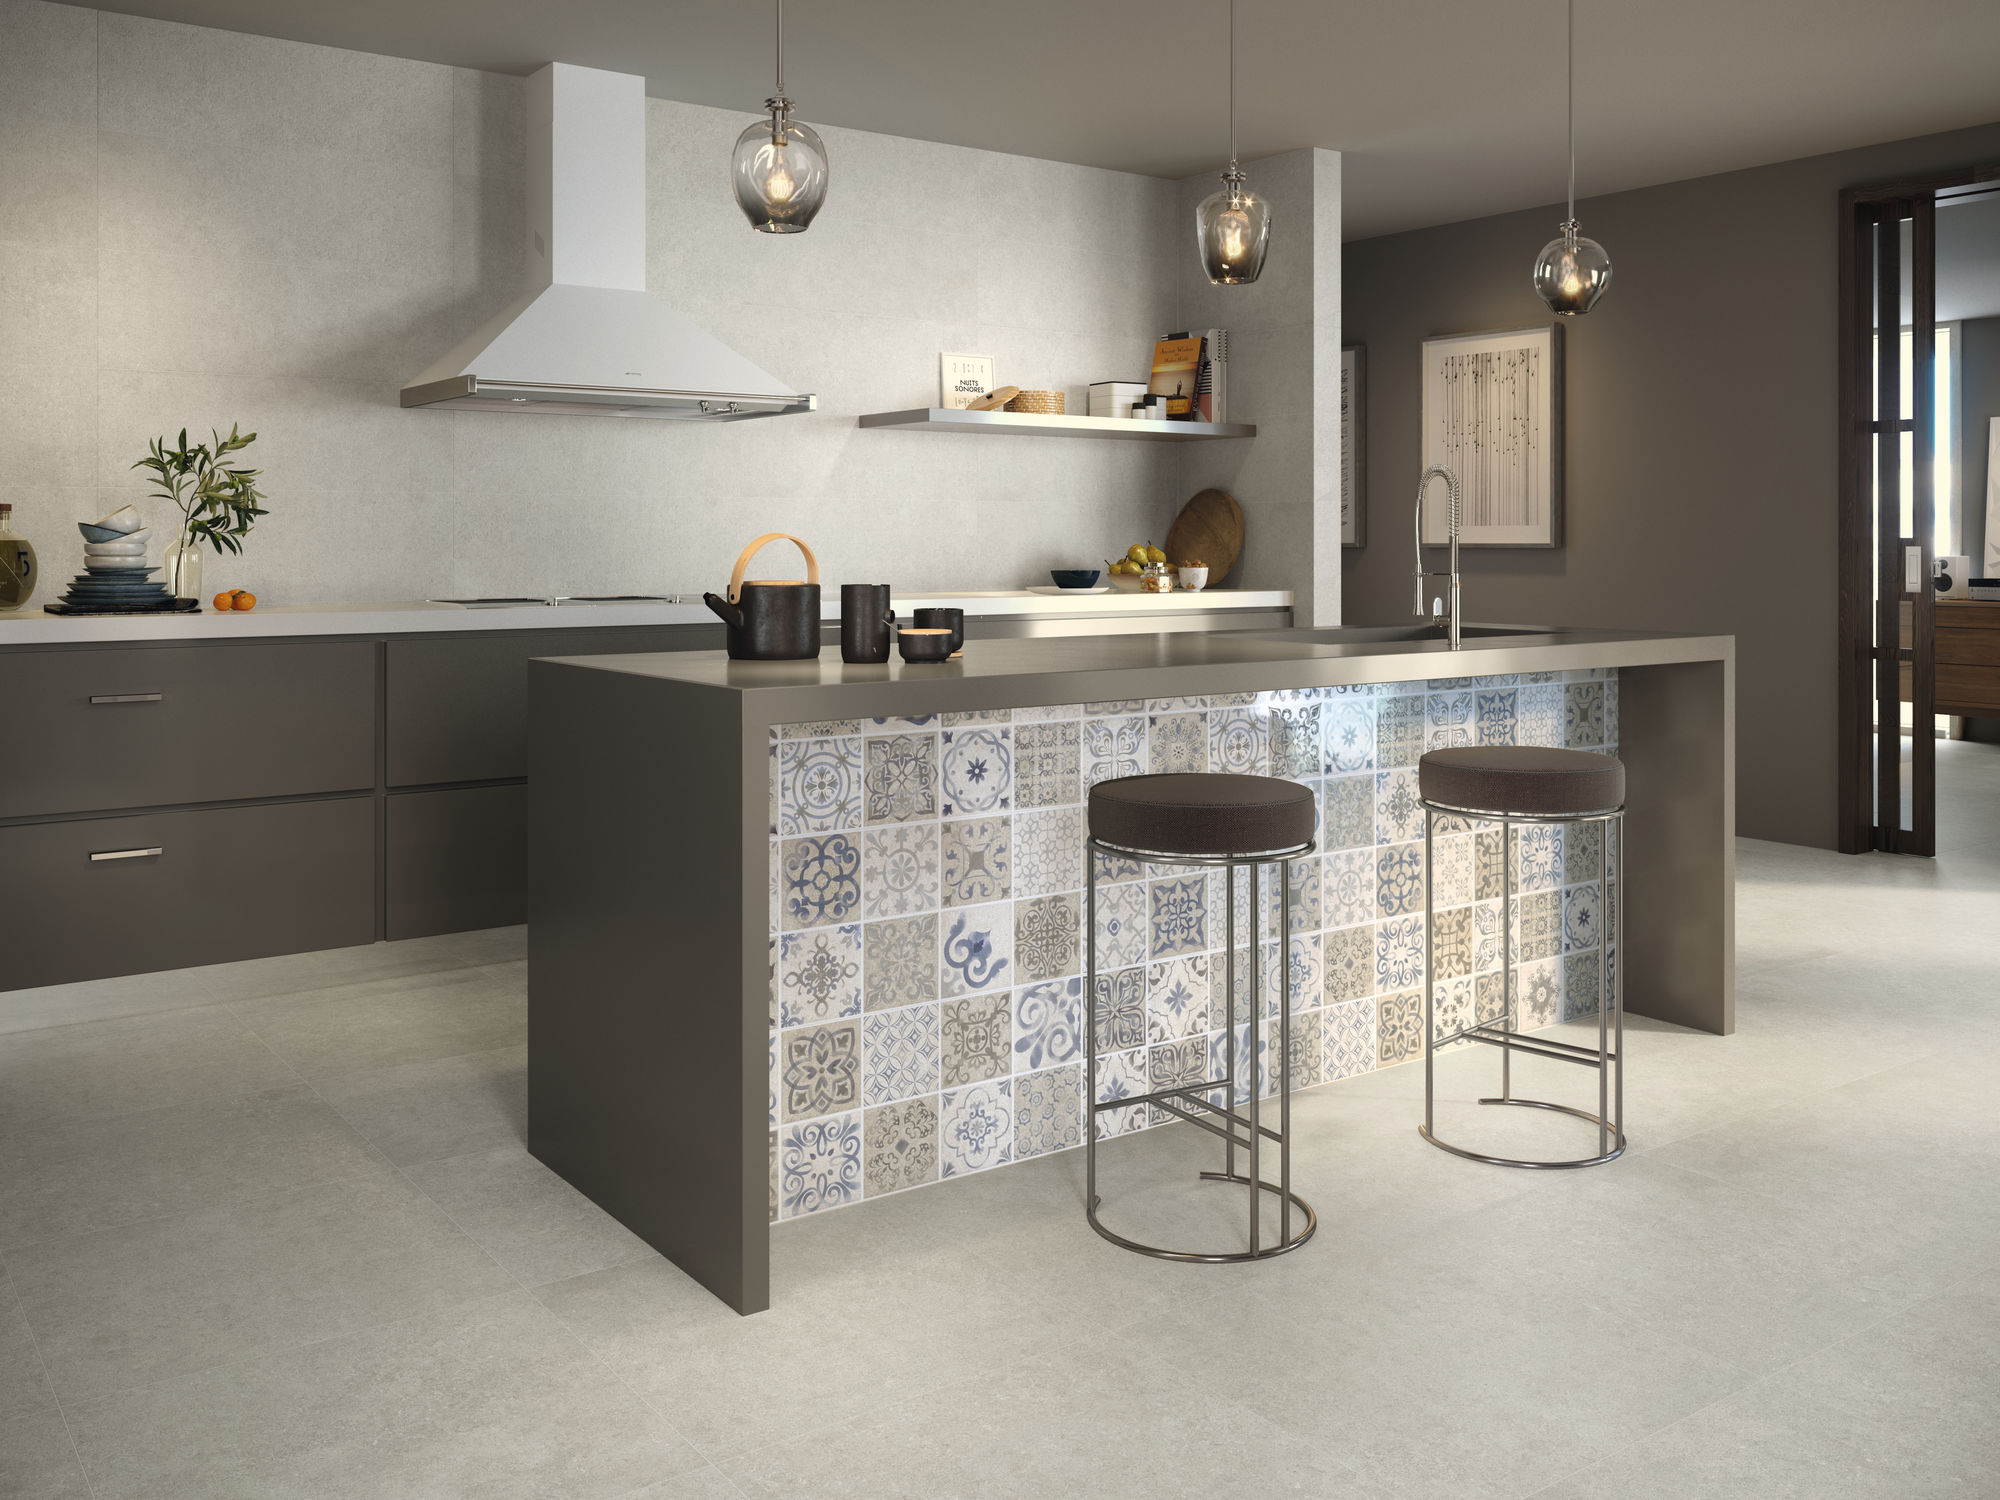 Slim Ozone grey 30X90. Mosaico Antique grey 30X90. Ozone grey 60X60.